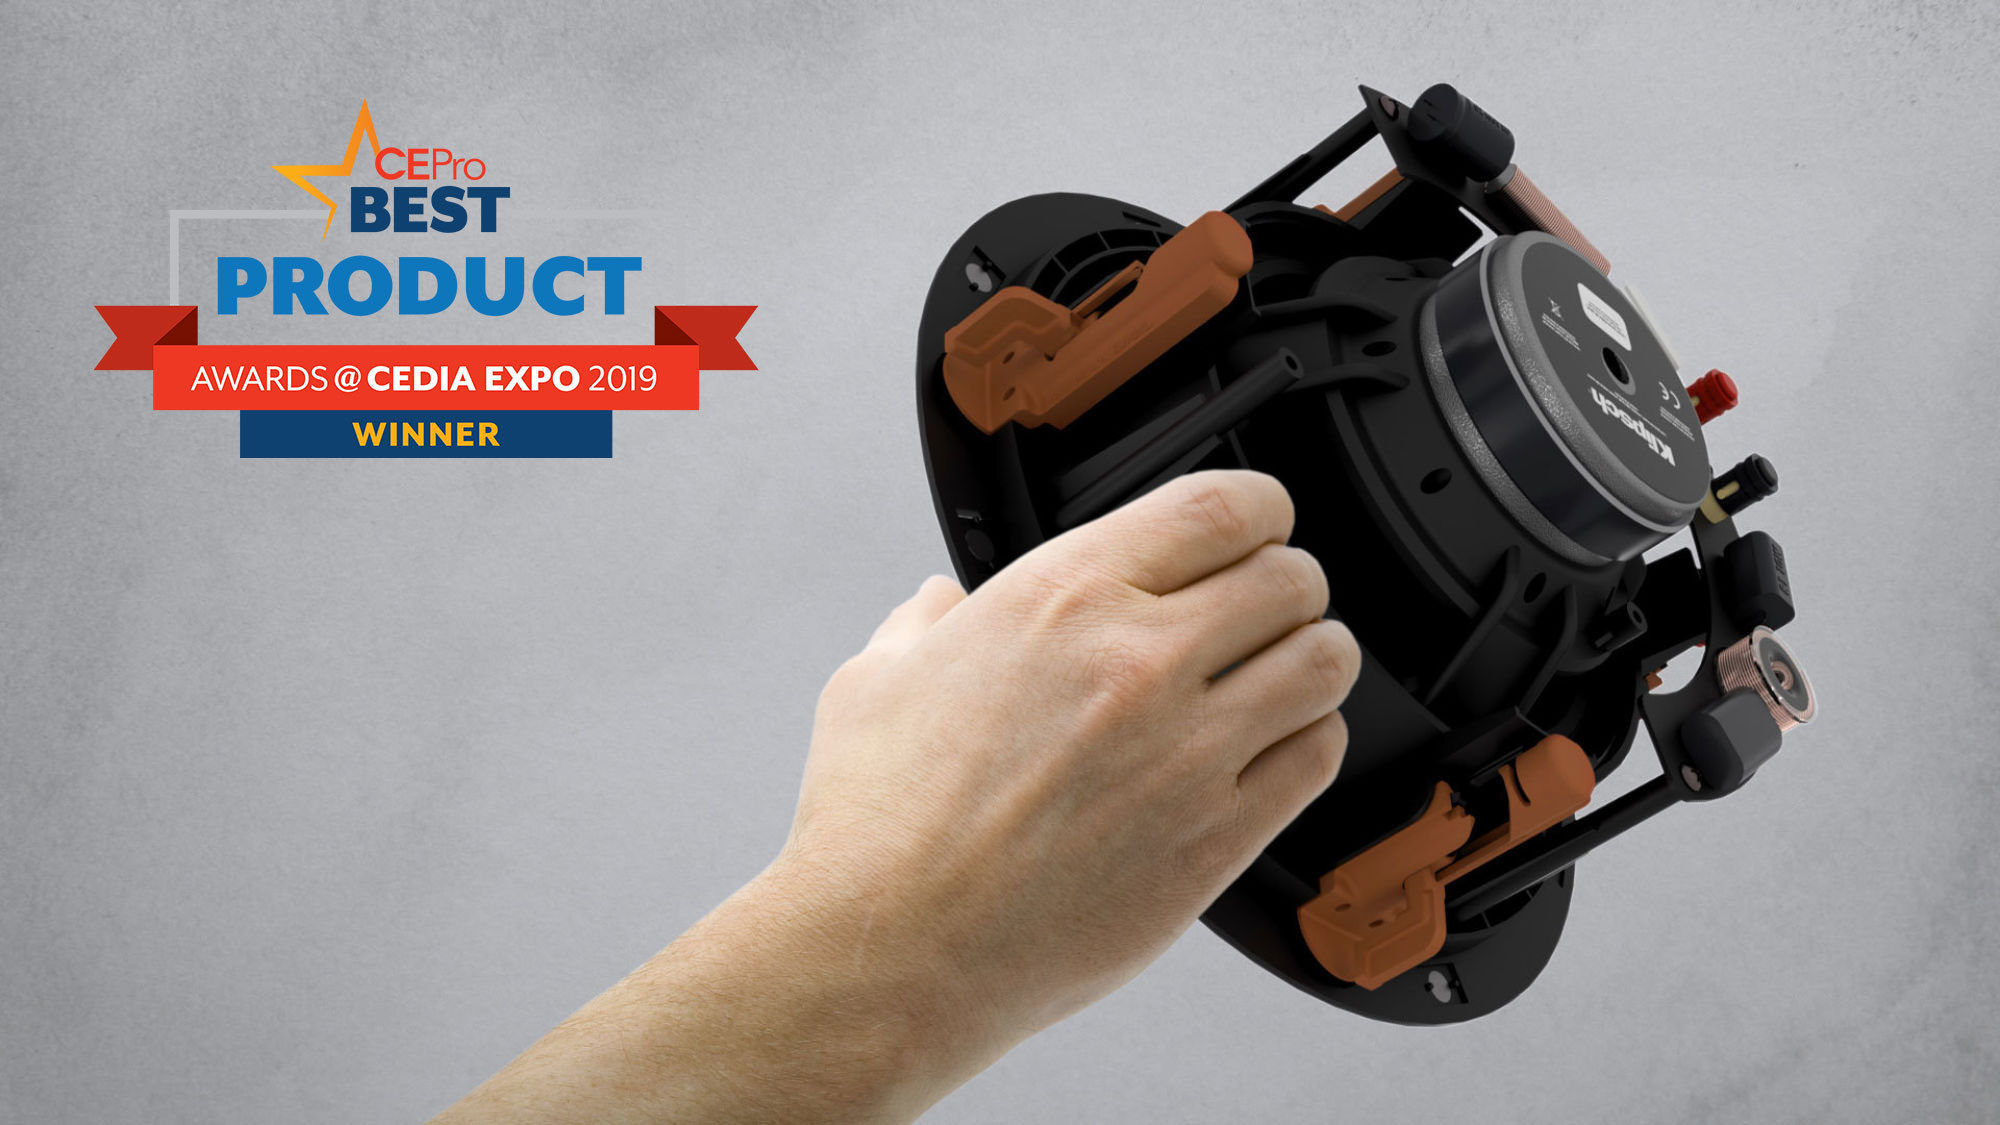 Skyhook CEPro Best Product Award